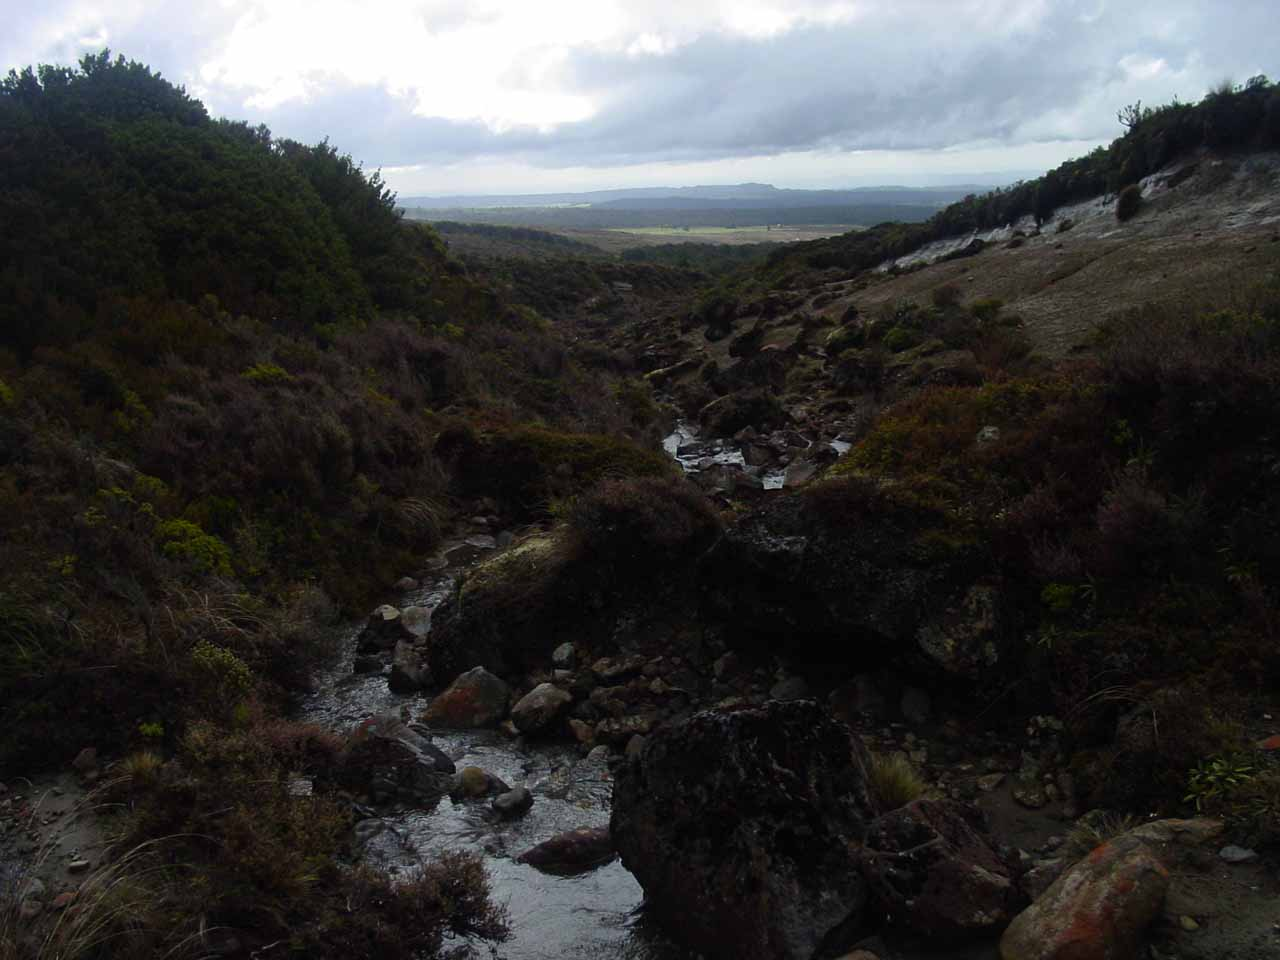 Looking downstream along some small ephemeral stream towards the open terrain further downslope of the Tongariro Northern Circuit